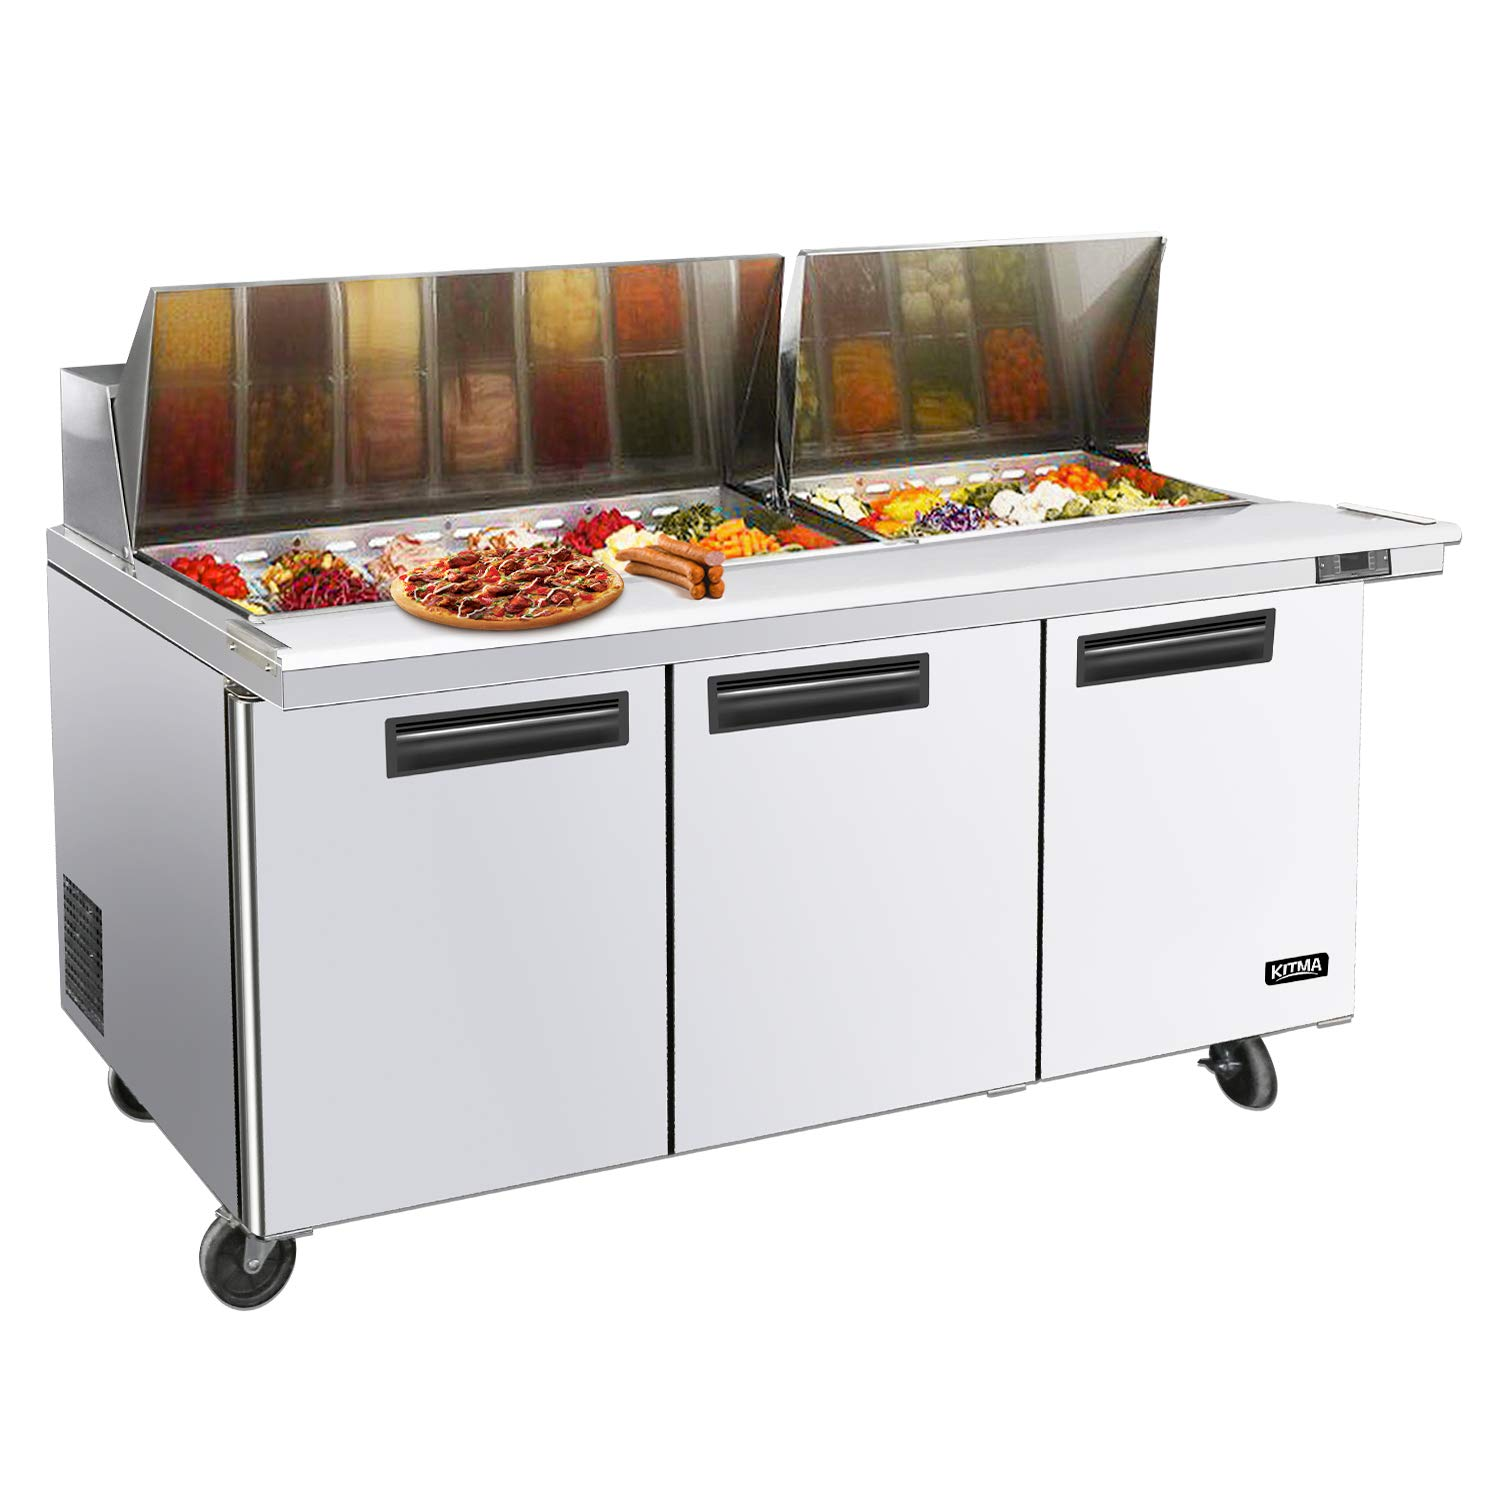 KITMA 73'' Sandwich Prep Table Three Door Refrigerator, 21.1 Cu.Ft. Commercial Stainless Steel Pizza Salad Prep Table Refrigerated with 18 Pans, 33-45 degrees Fahrenhei by KITMA